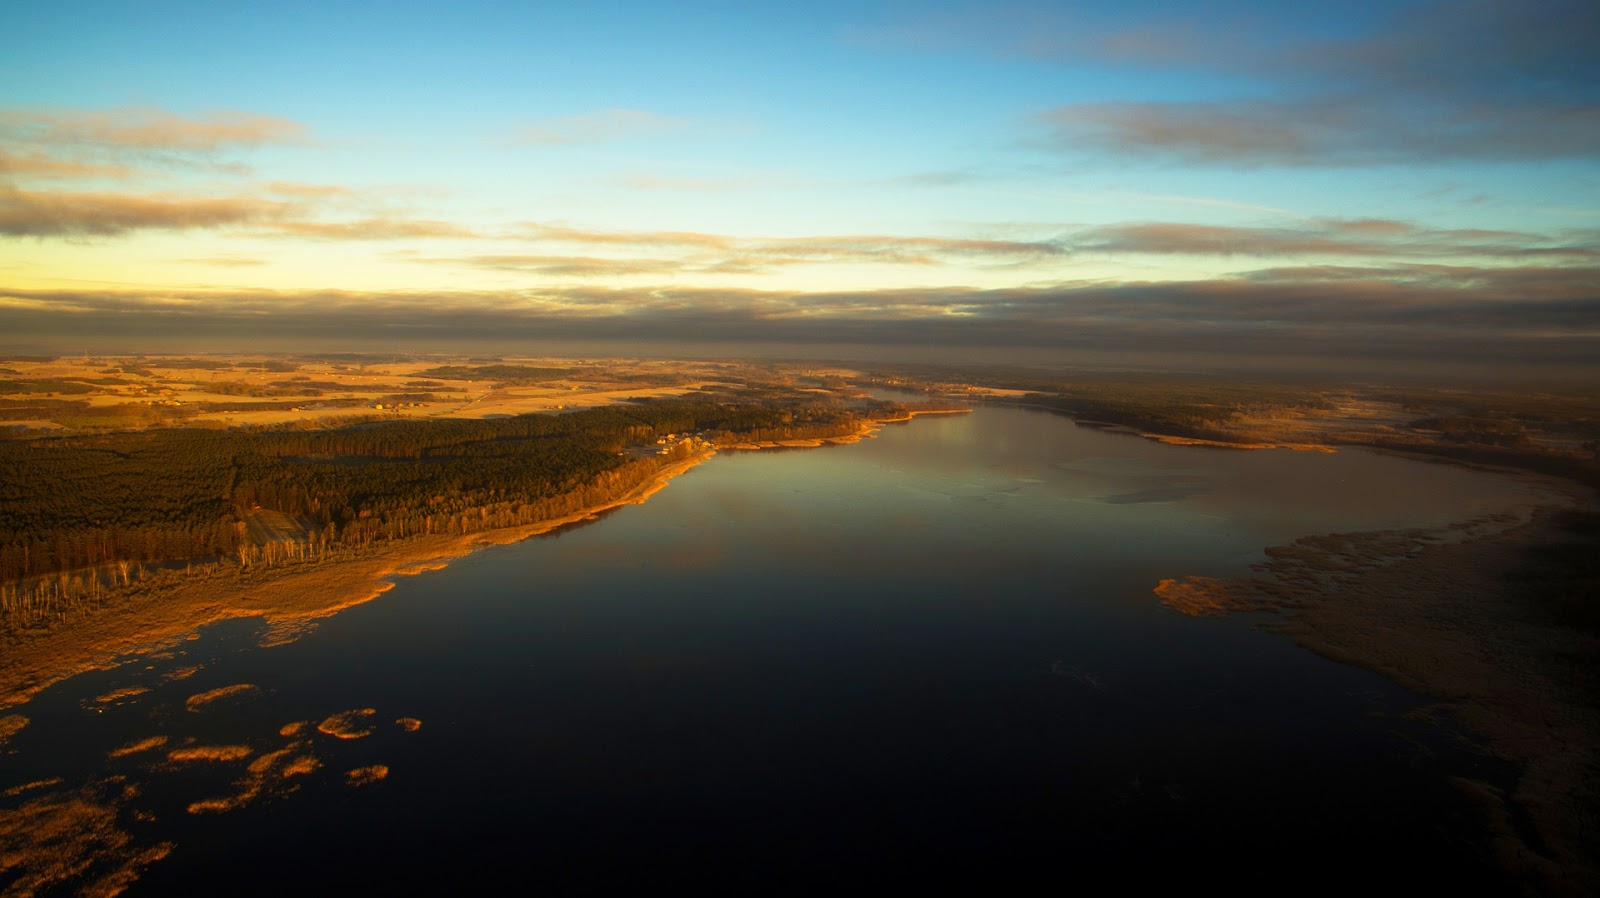 masurian lake district and forest at sunset aerial view poland nature